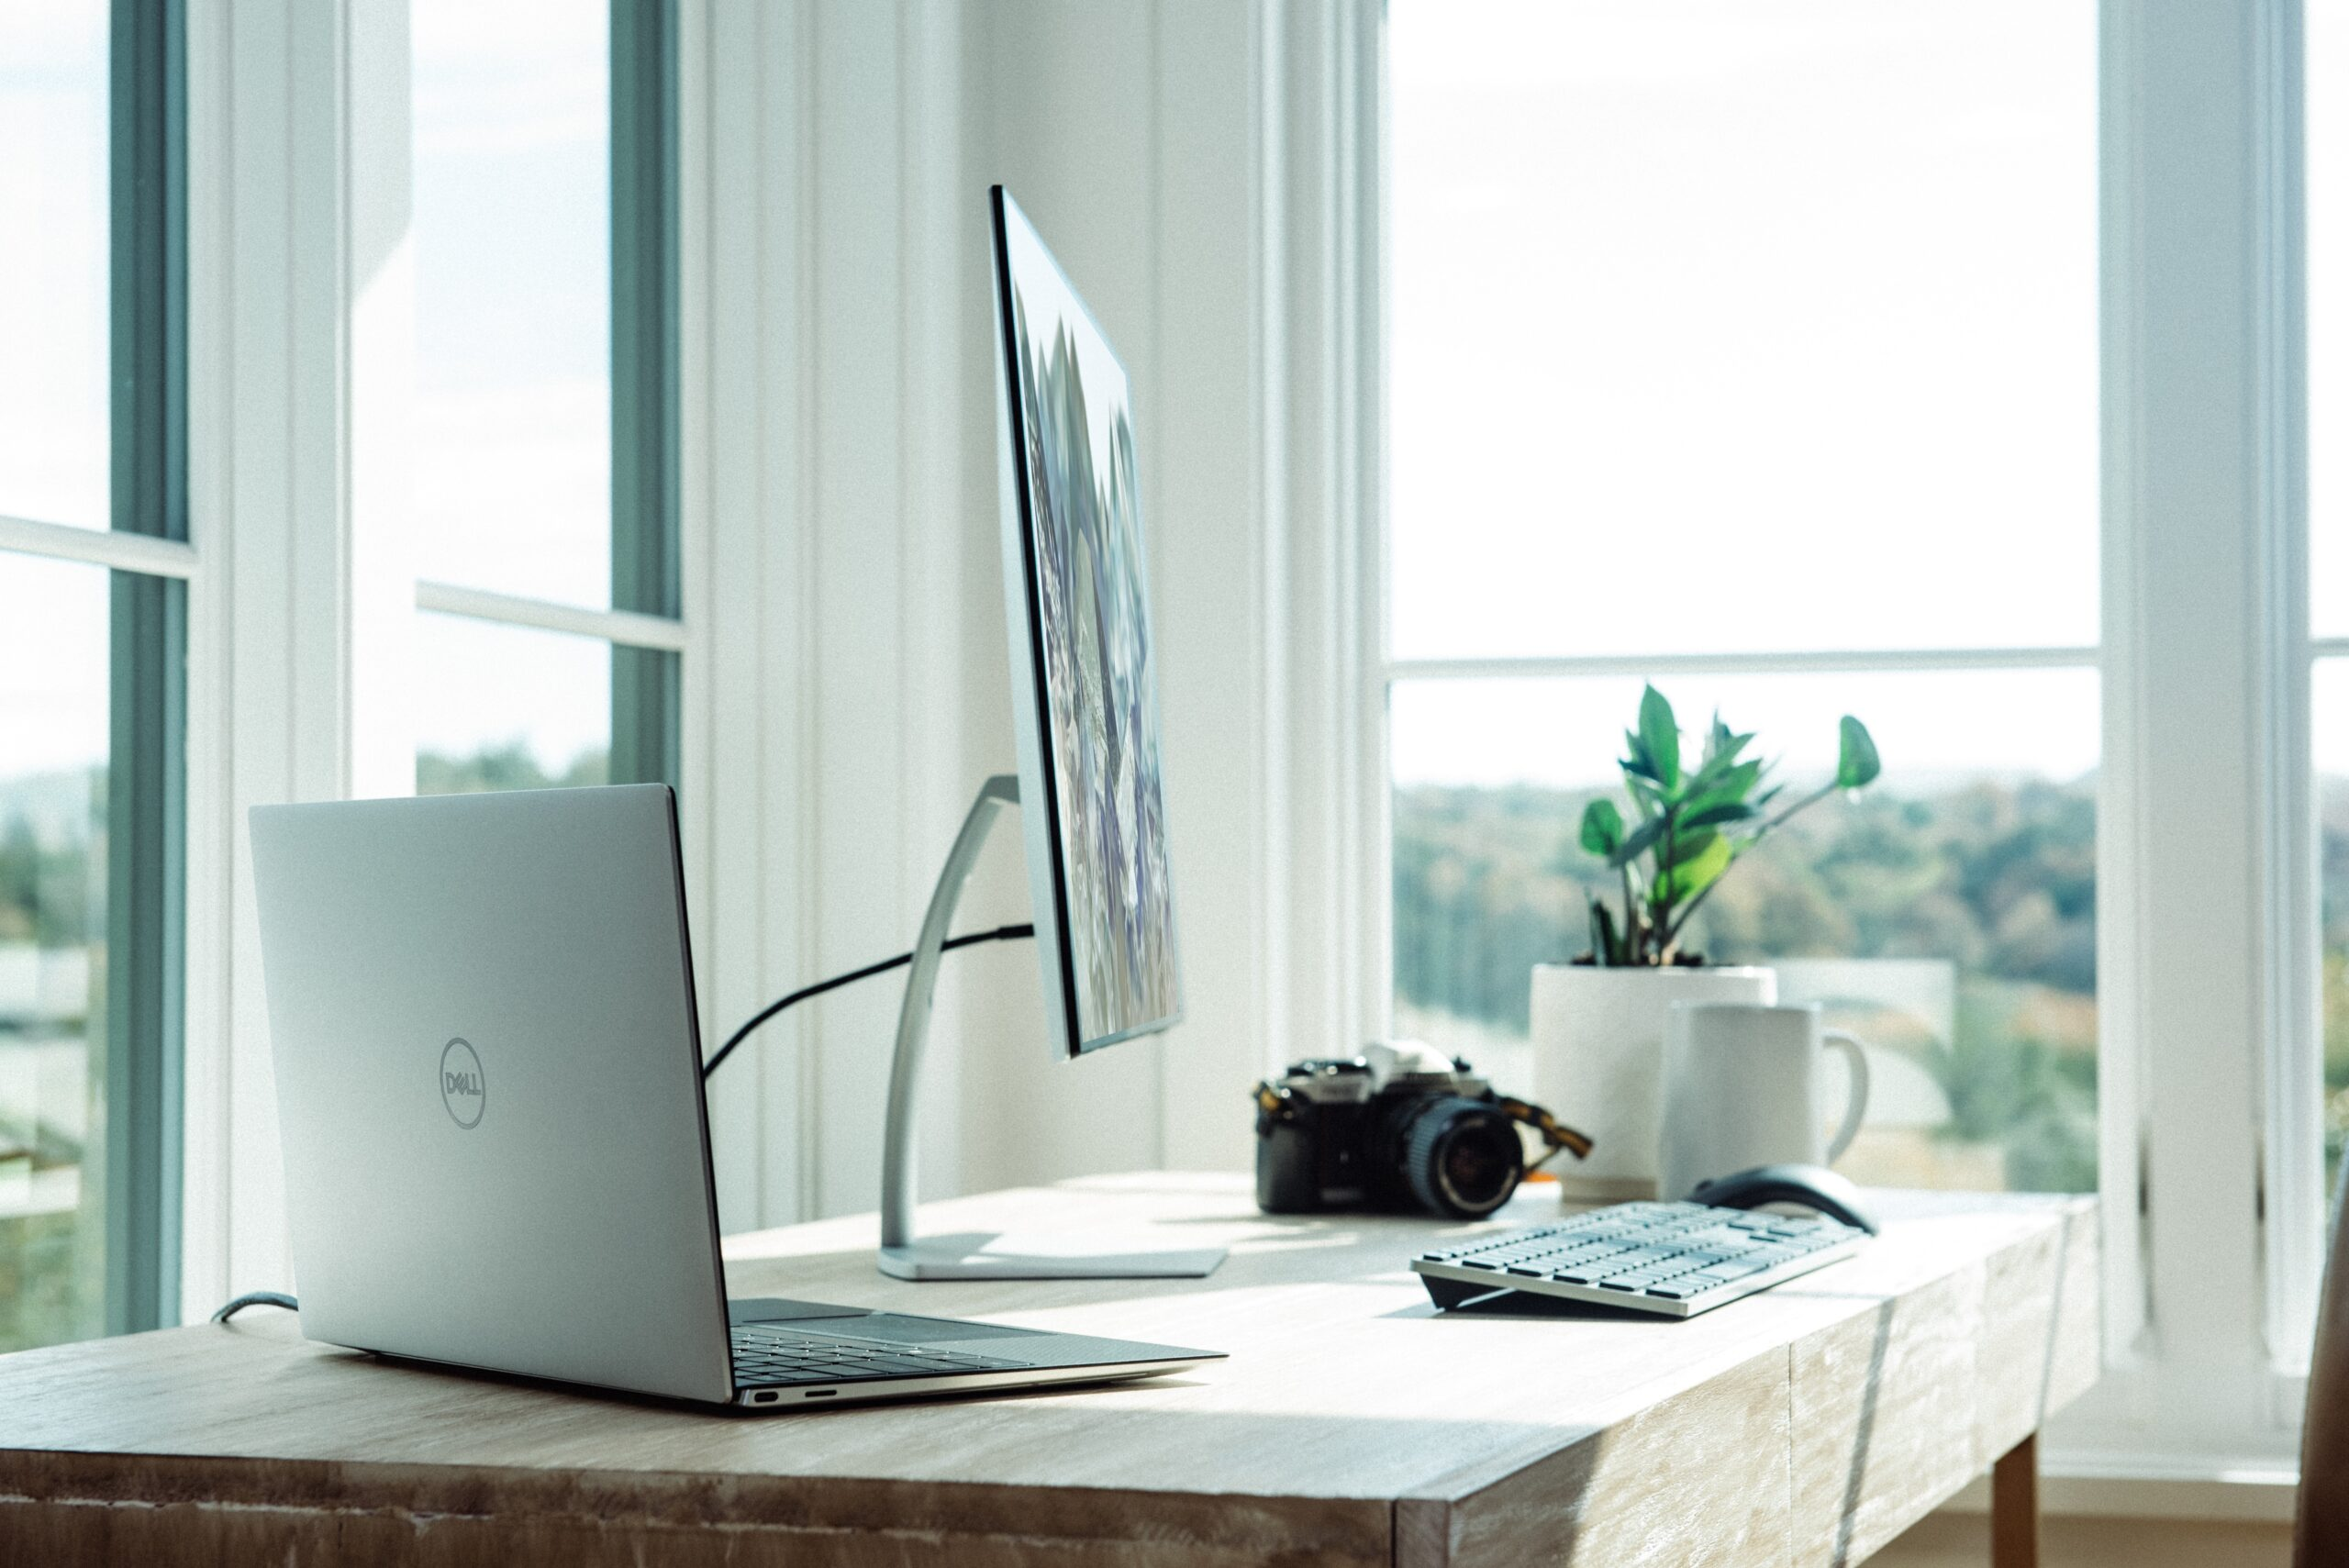 silver laptop on white table